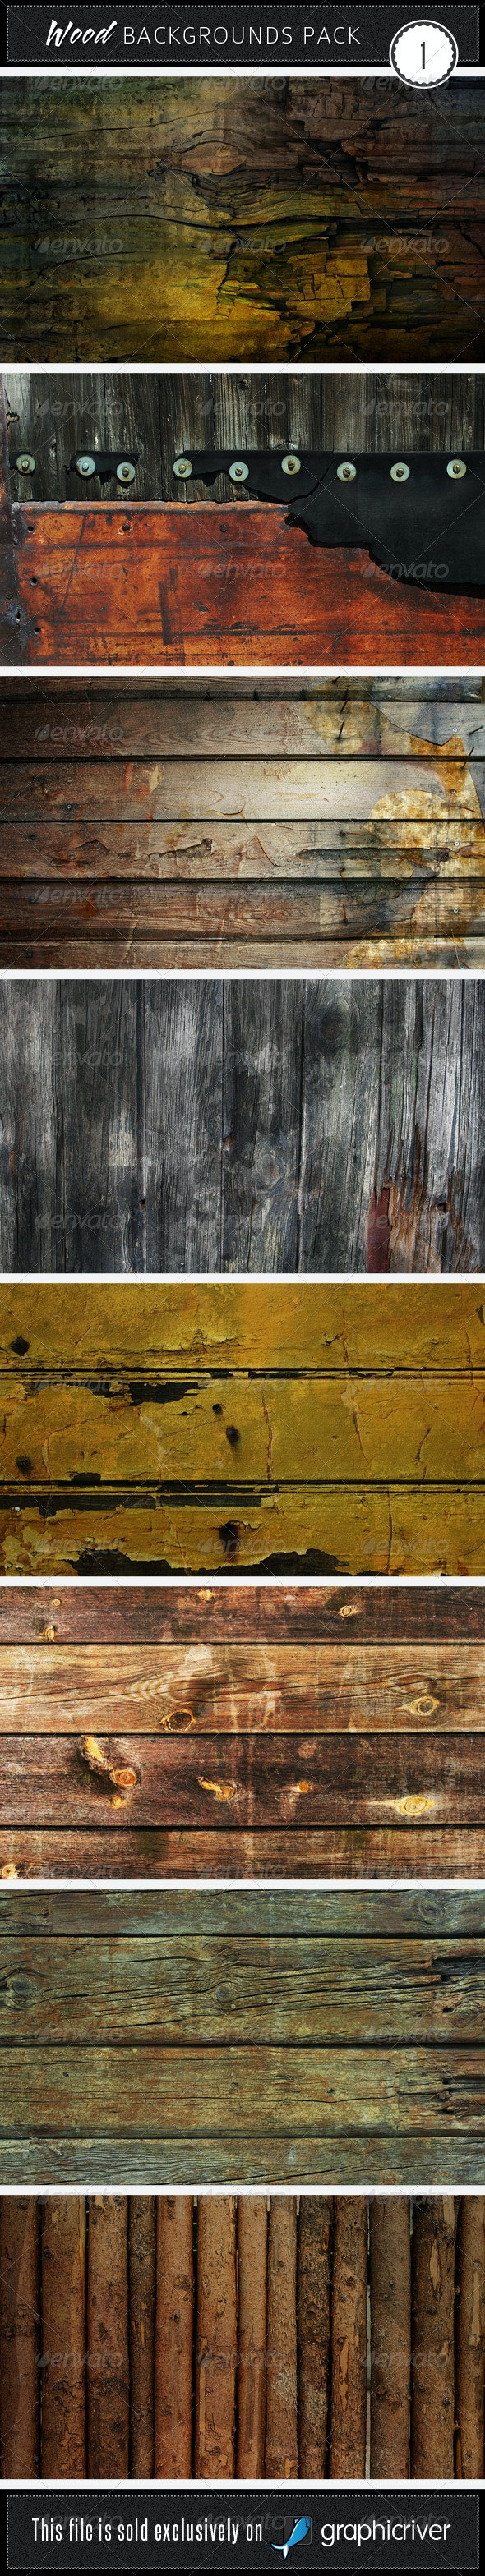 Wood Backgrounds Pack 1 - Wood Textures